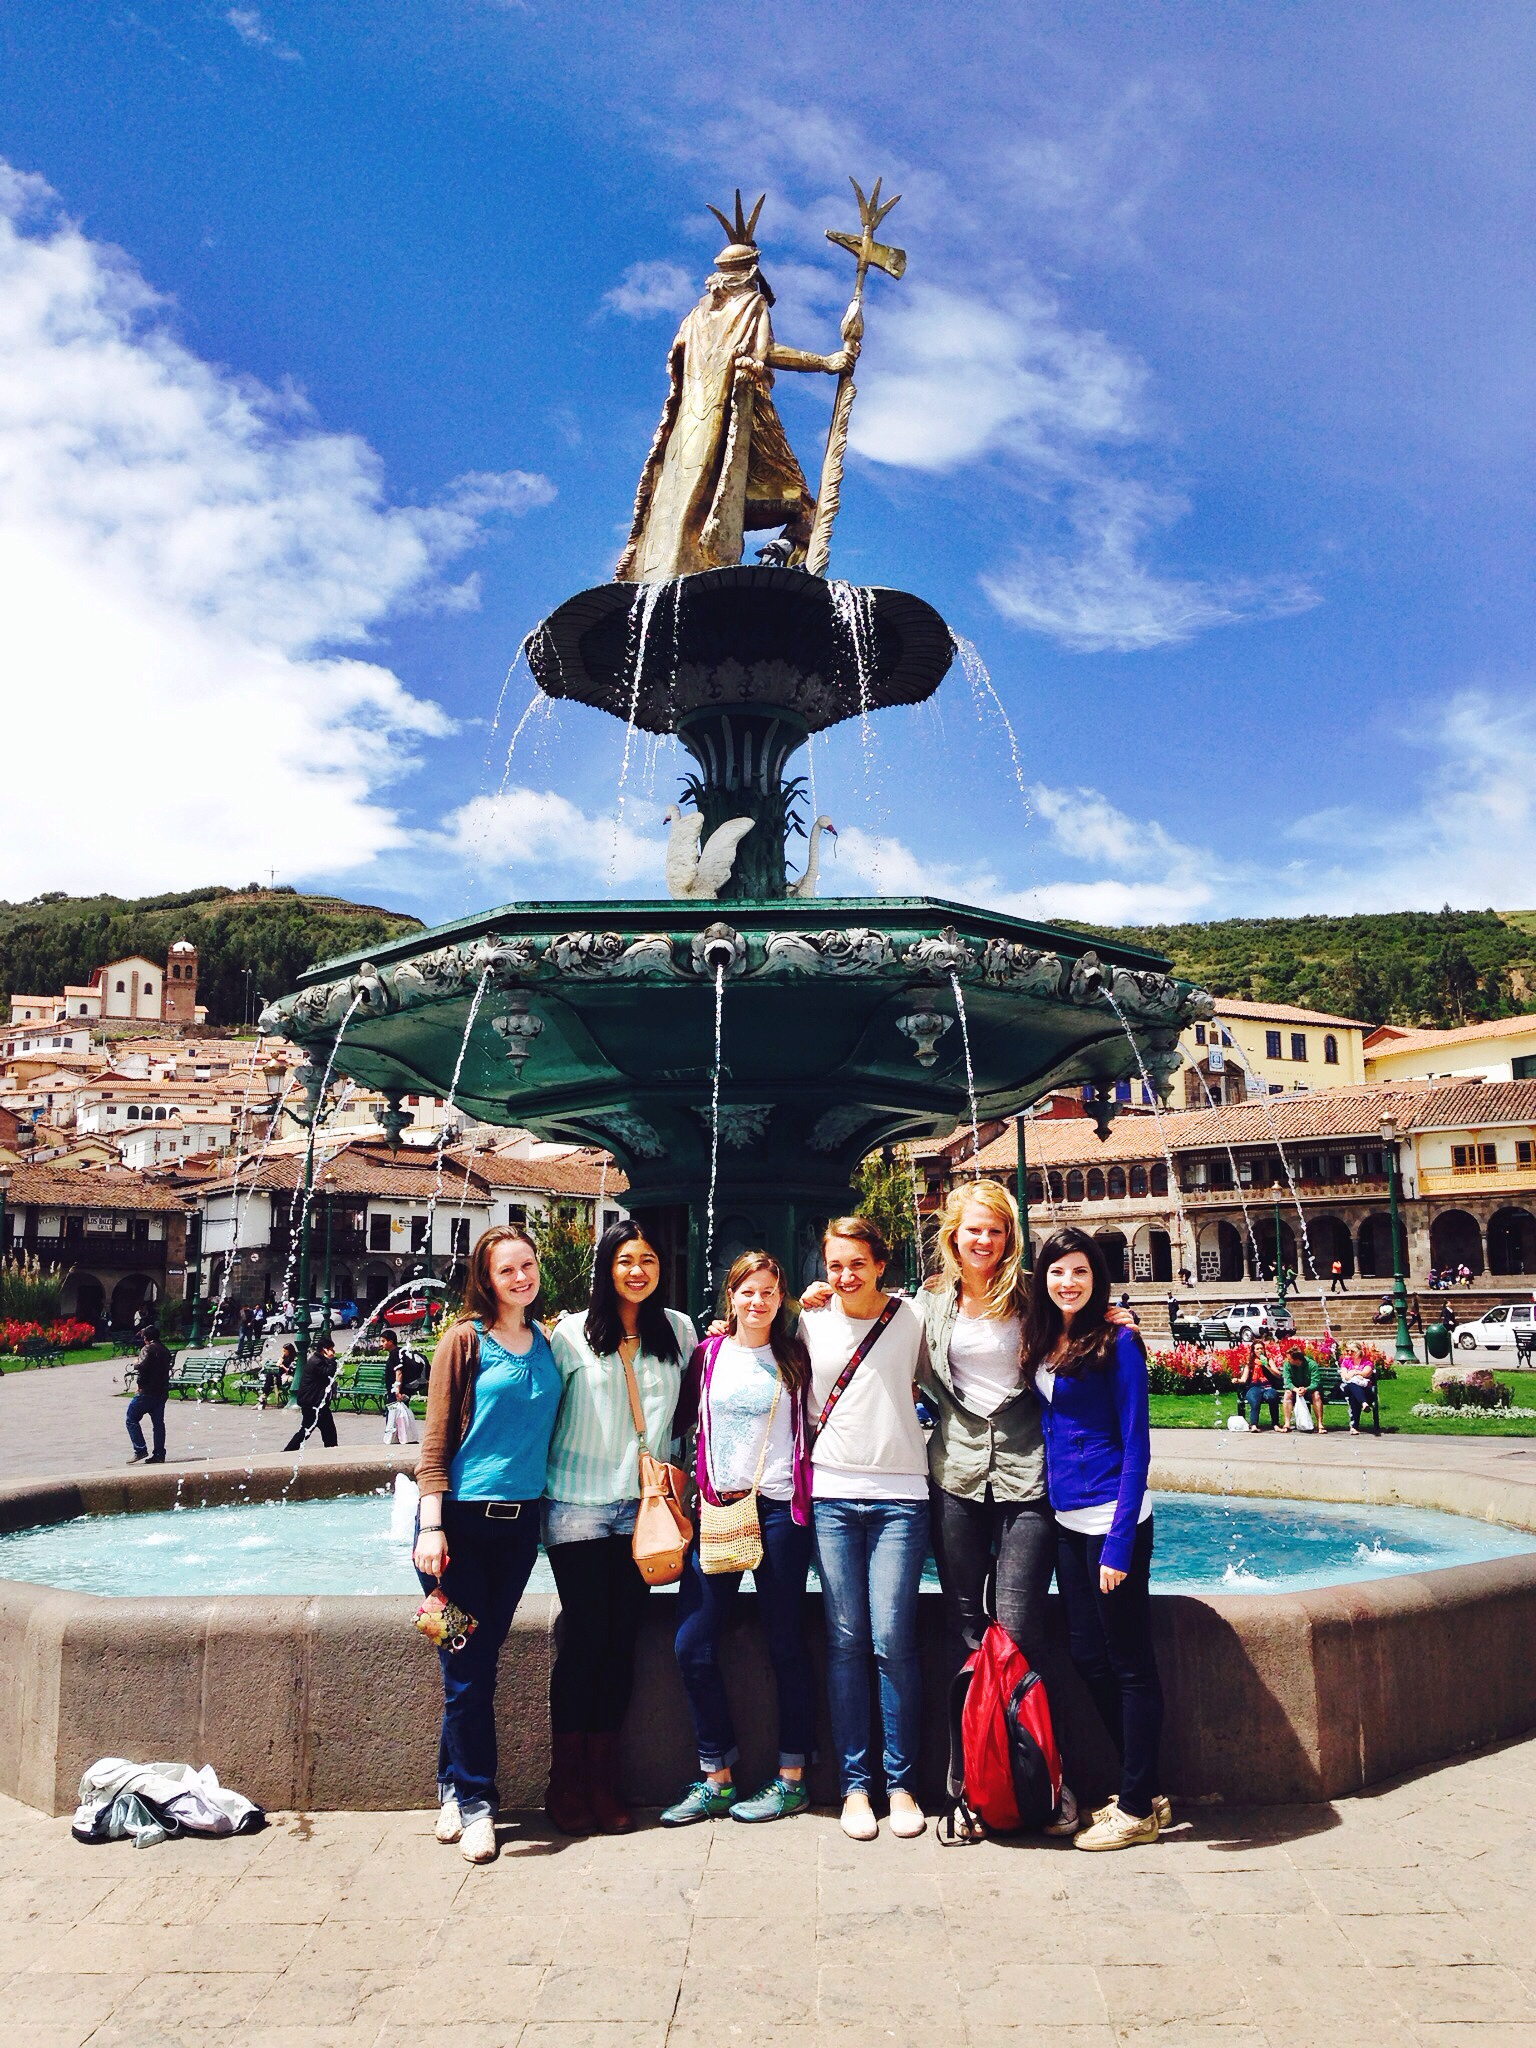 Meet our wonderful fall interns in Cusco (minus Kirstyn Powell) from our Phase I study with our founder, Lauren Braun! From August through December, this team followed up with and gave final questionnaires to the more than 100 moms in our Cusco pilot study. We also GPS'd every mom's house and interviewed nurses about the bracelet. From left to right: Rachel Way, Joanie Kim, Annadele Herman, Nora Springstubb, Eleonore van Wonterghem, and Lauren Braun. Photo taken: Dec. 4, 2013.